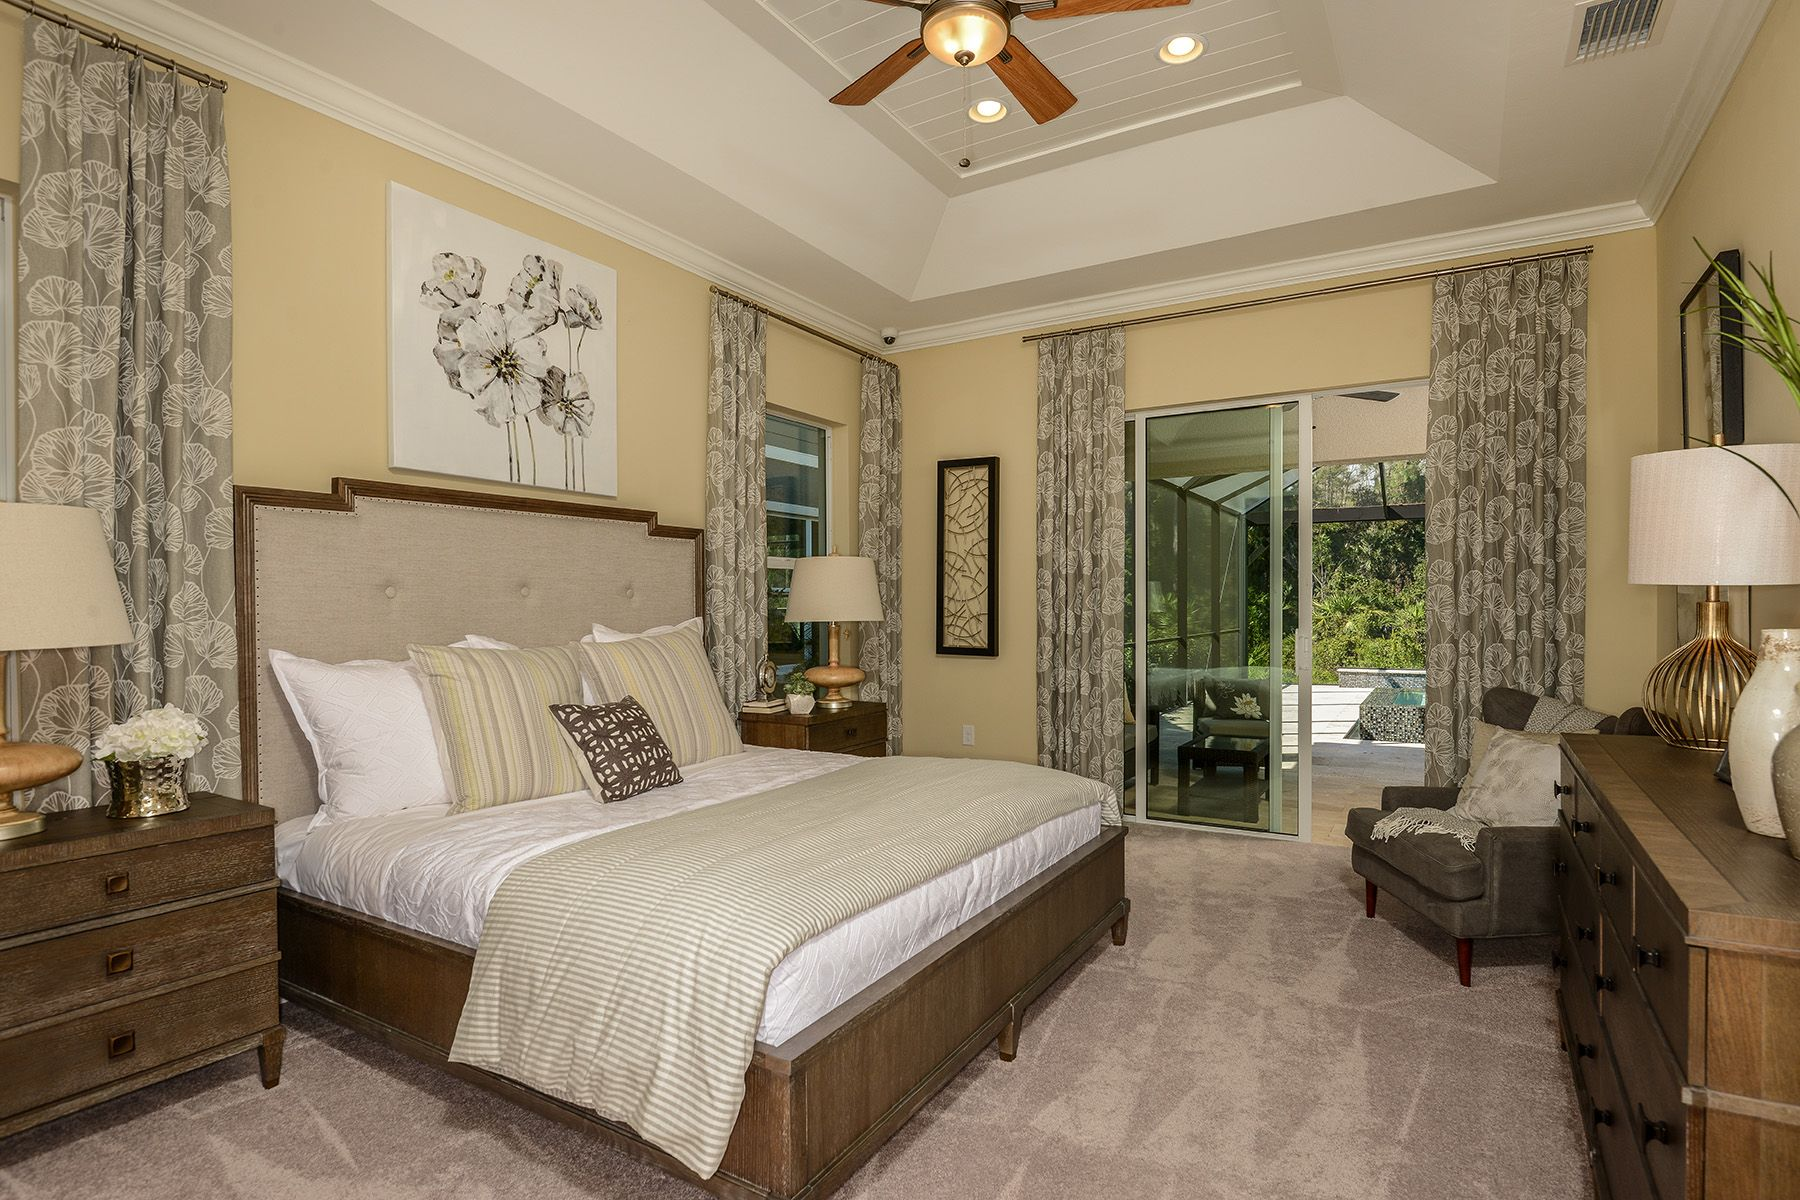 Bedroom featured in the Commodore By Mattamy Homes in Naples, FL